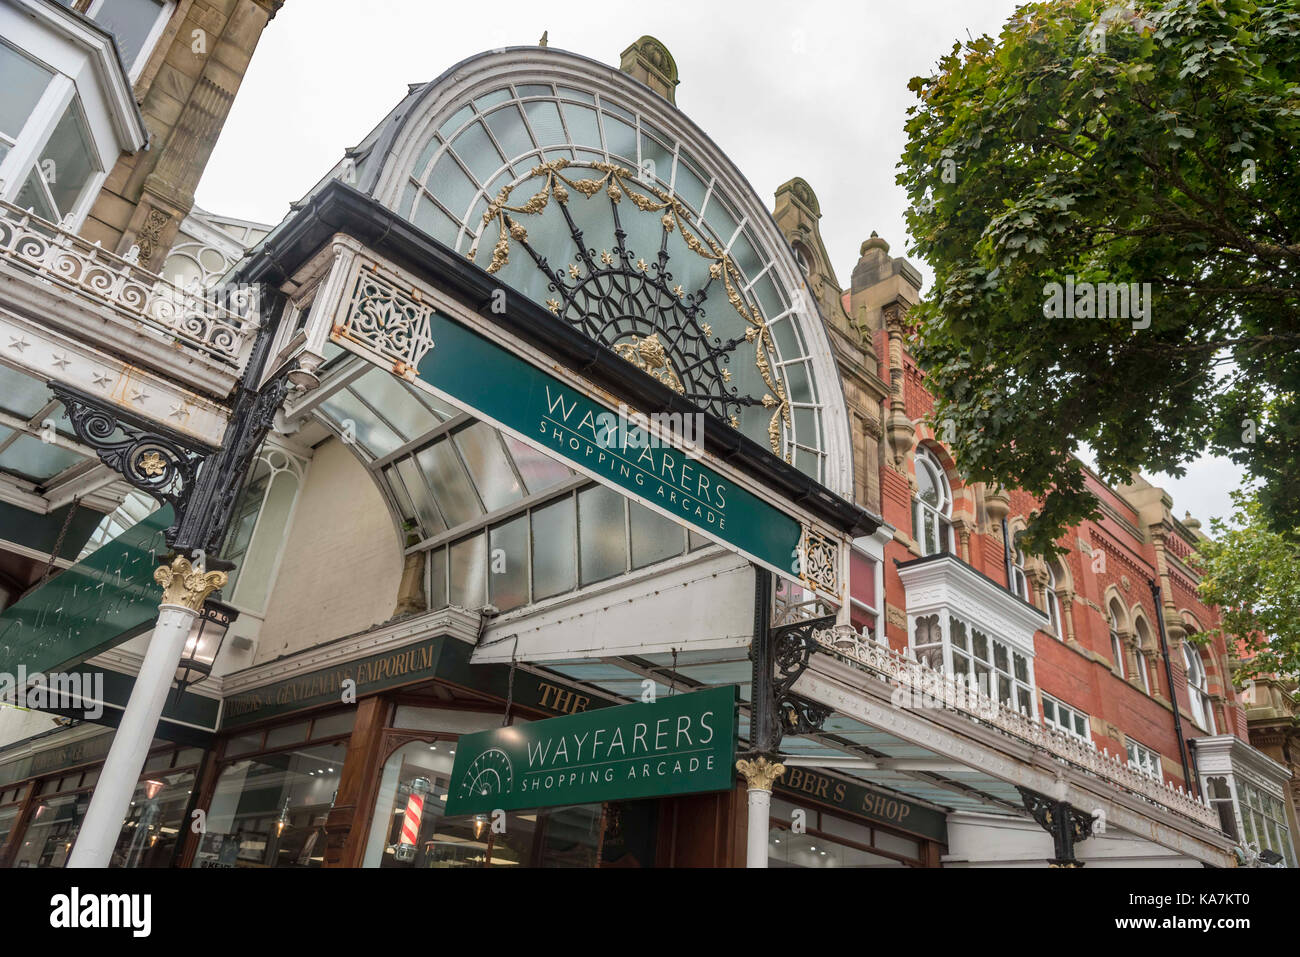 Southport The Wayfarers Arcade Lord street. - Stock Image